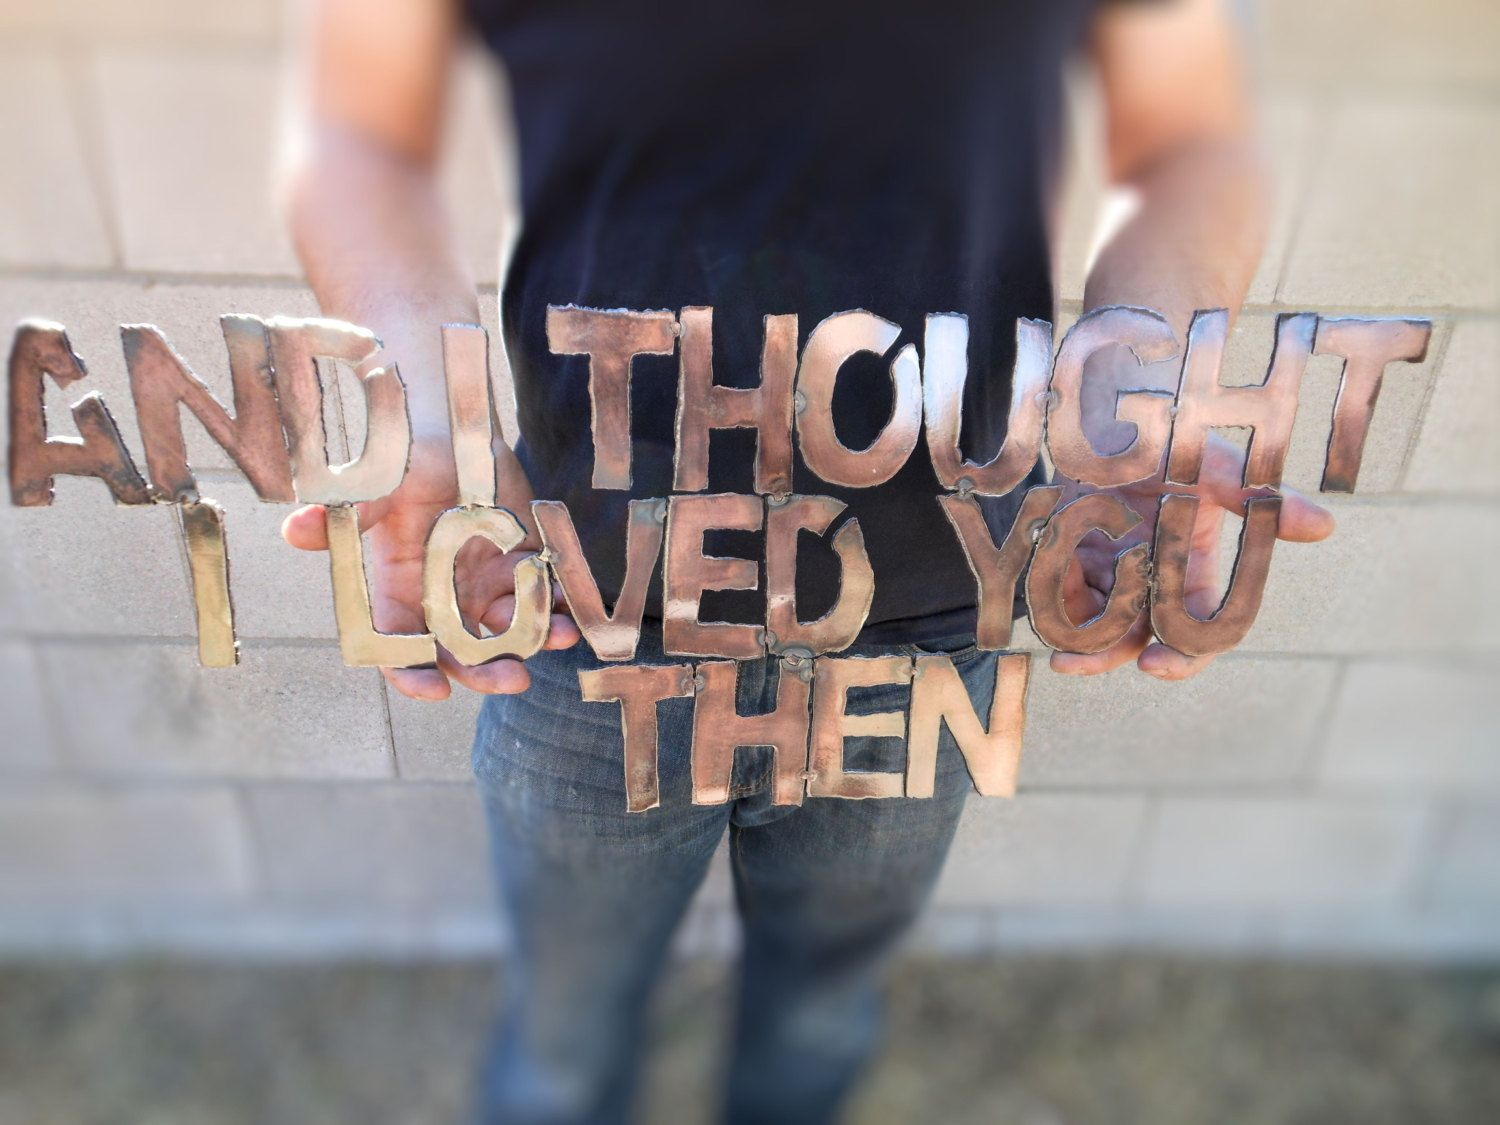 And I Thought I Loved You Then, Metal Sign, Custom Wall